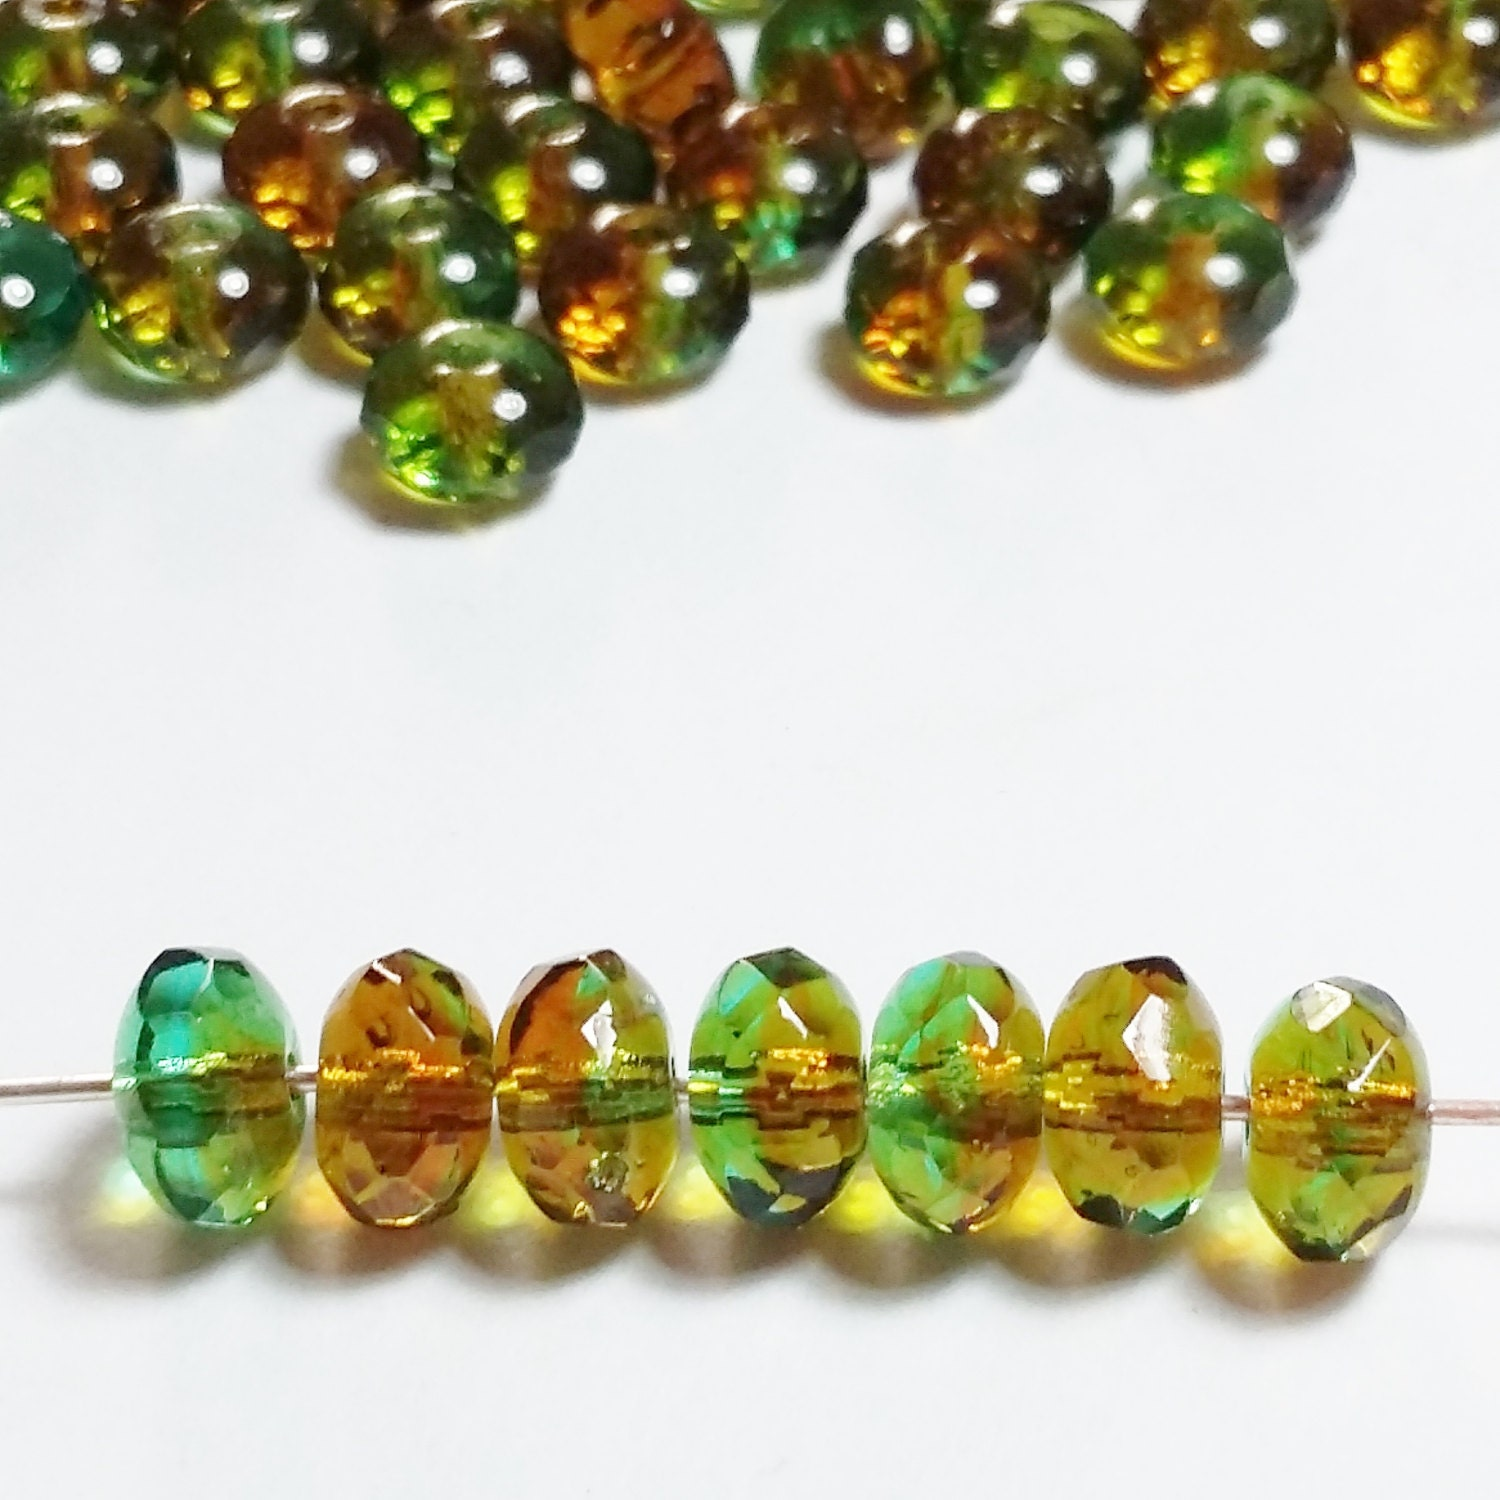 GB240 Green /& Pink Czech Glass Faceted Rondelle Beads 4x7mm 20pcs Blue